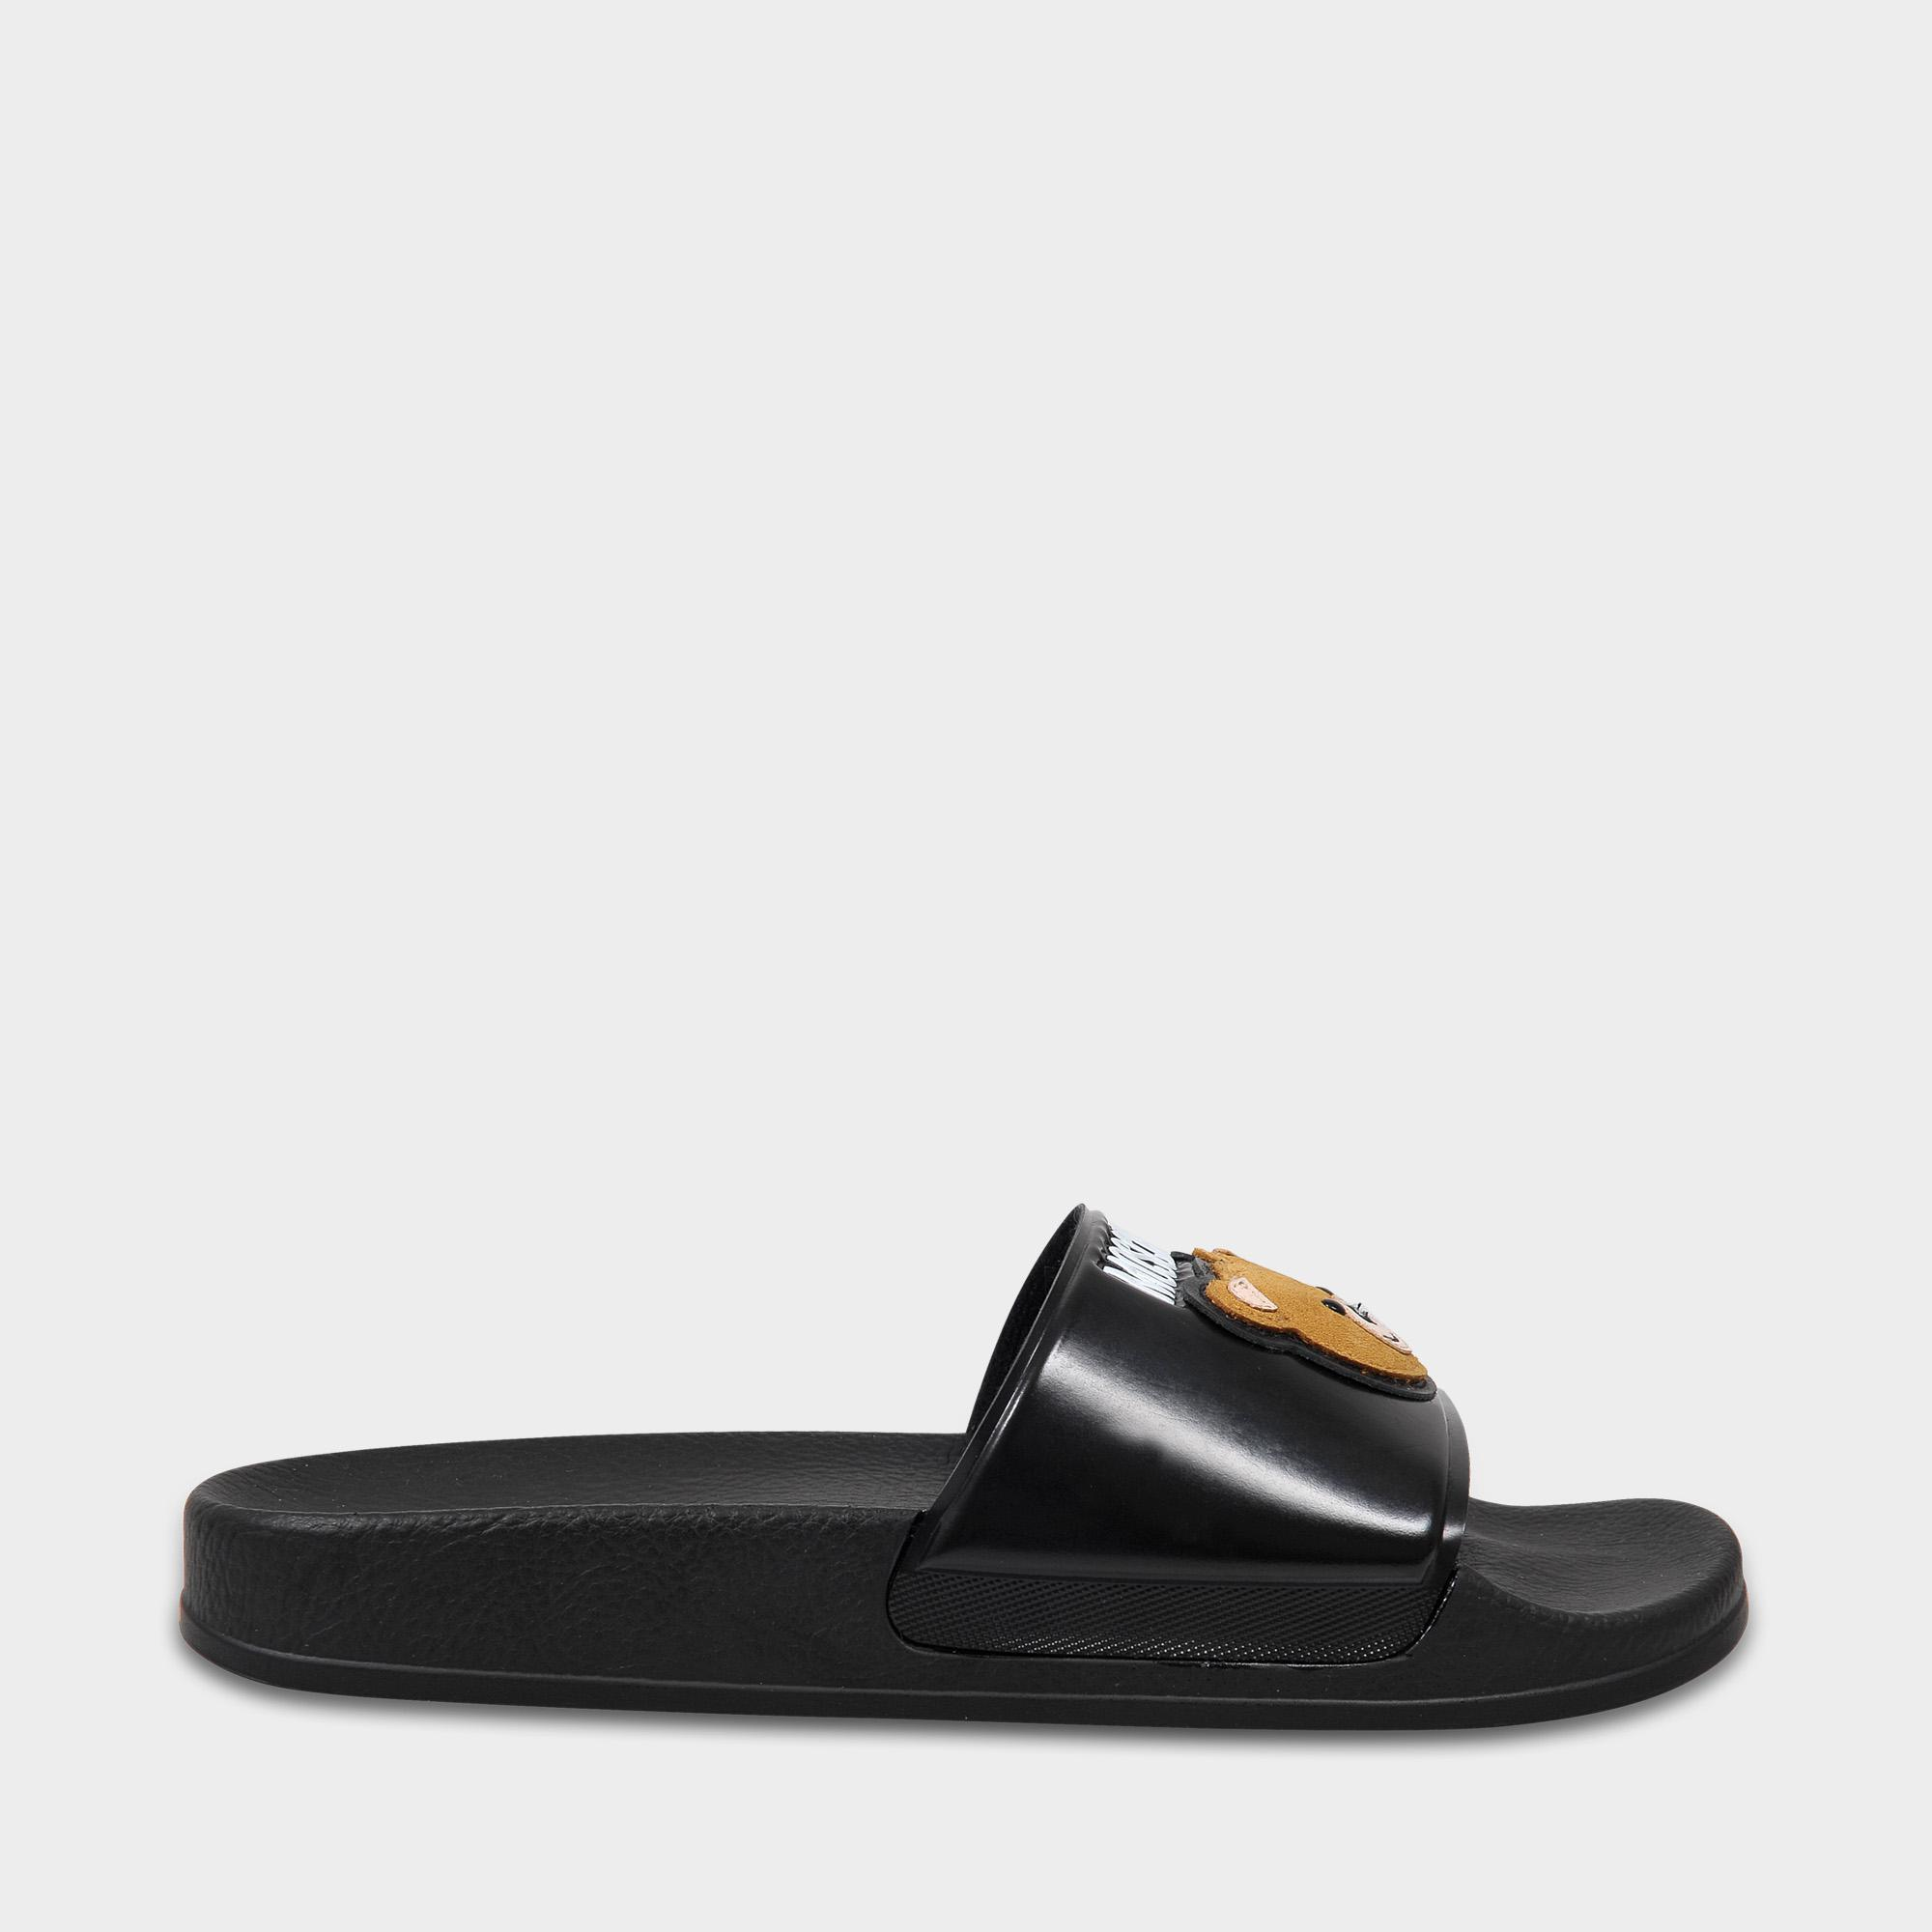 Teddy pool slides Moschino LLUlPCgPa